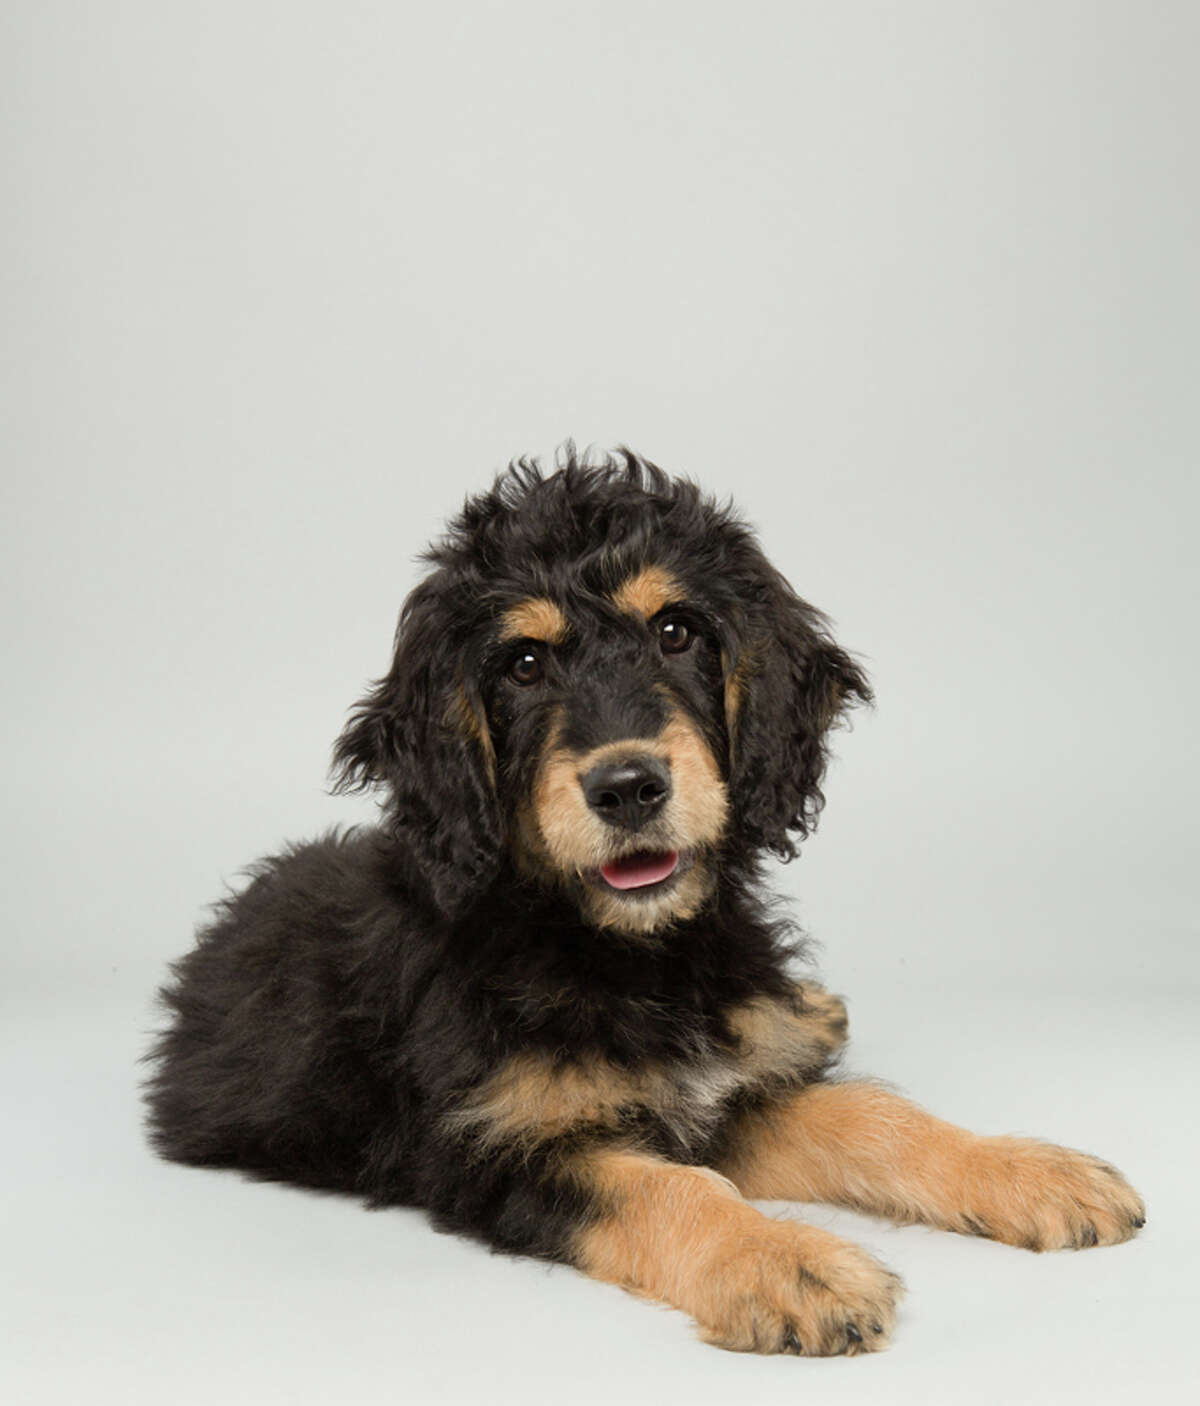 Name: Bach Age: 14 weeks  Breed: Bernedoodle  Fact: Thinks Mozart is overrated. See more images of the Puppy Bowl competitors from Animal Planet.